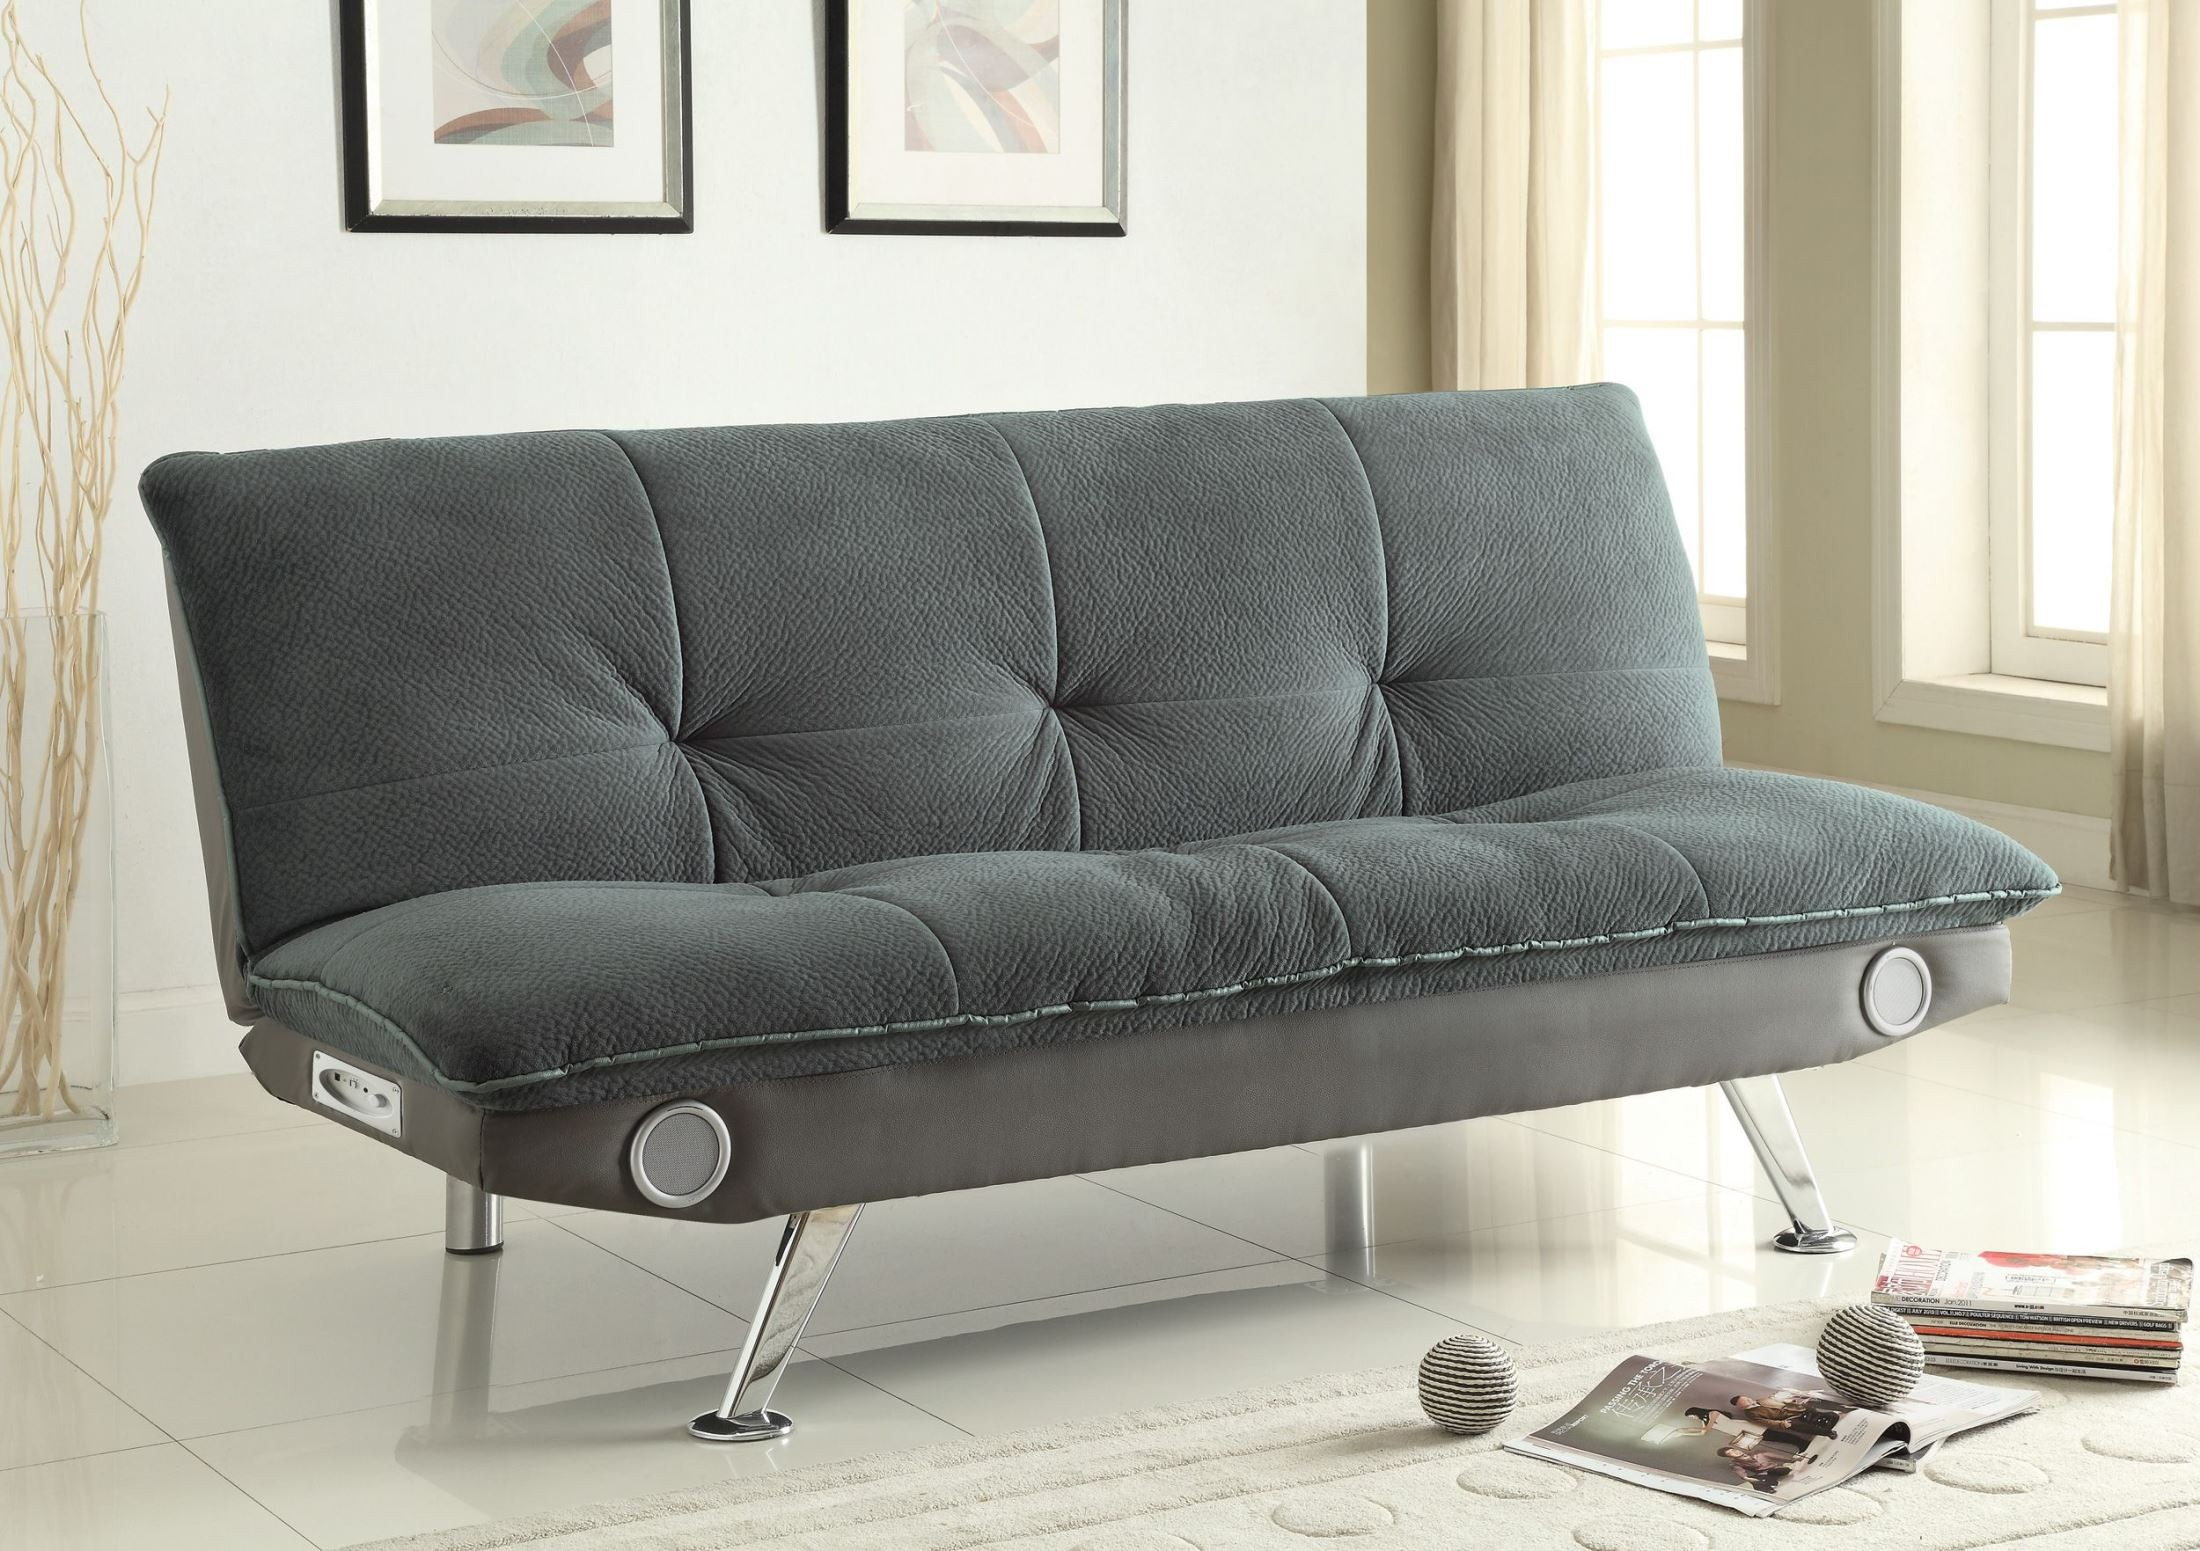 Braxton grey sofa bed from coaster 500046 coleman for Grey divan bed